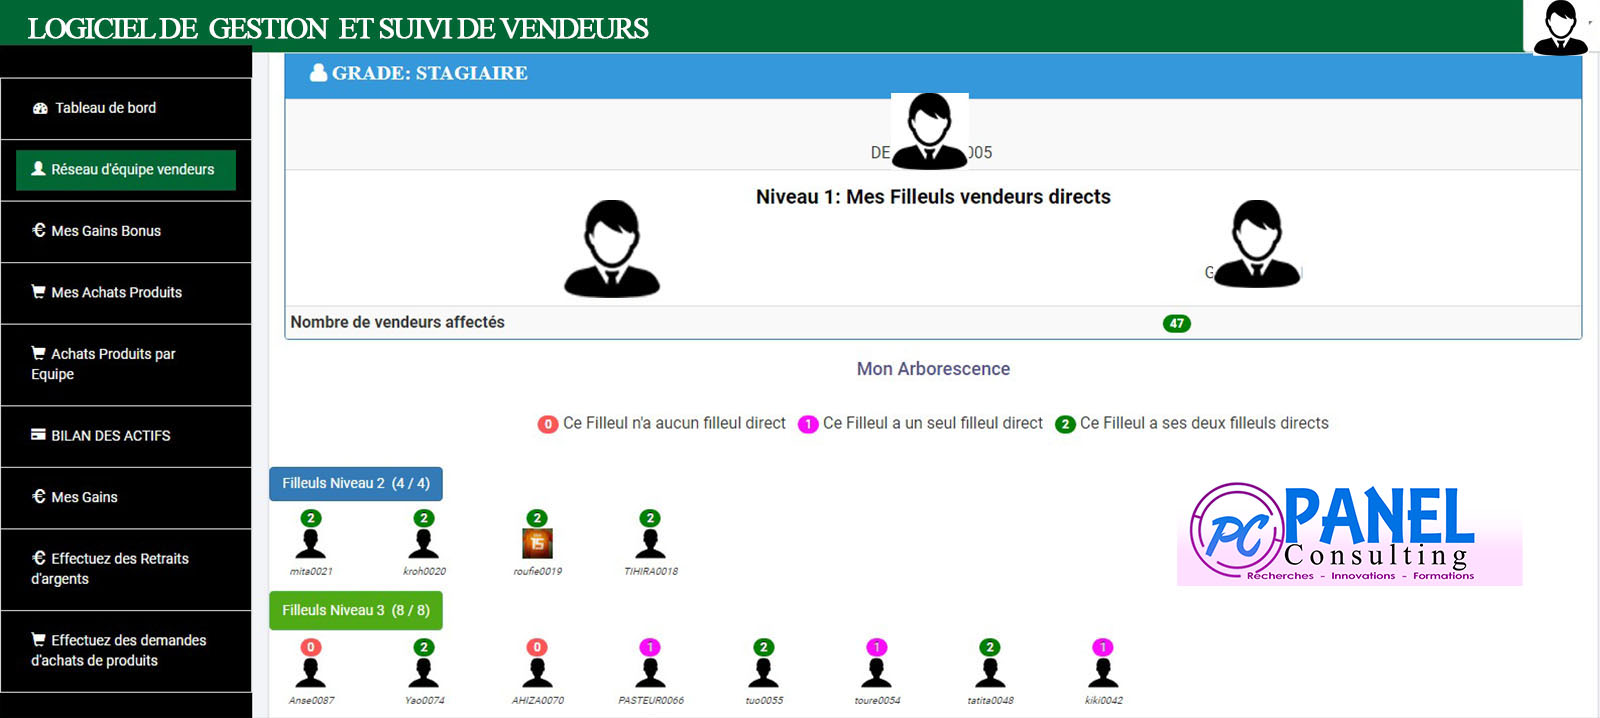 reseau-vendeur-application-web-gestion-vente-panel-consulting.jpg-panel-consulting